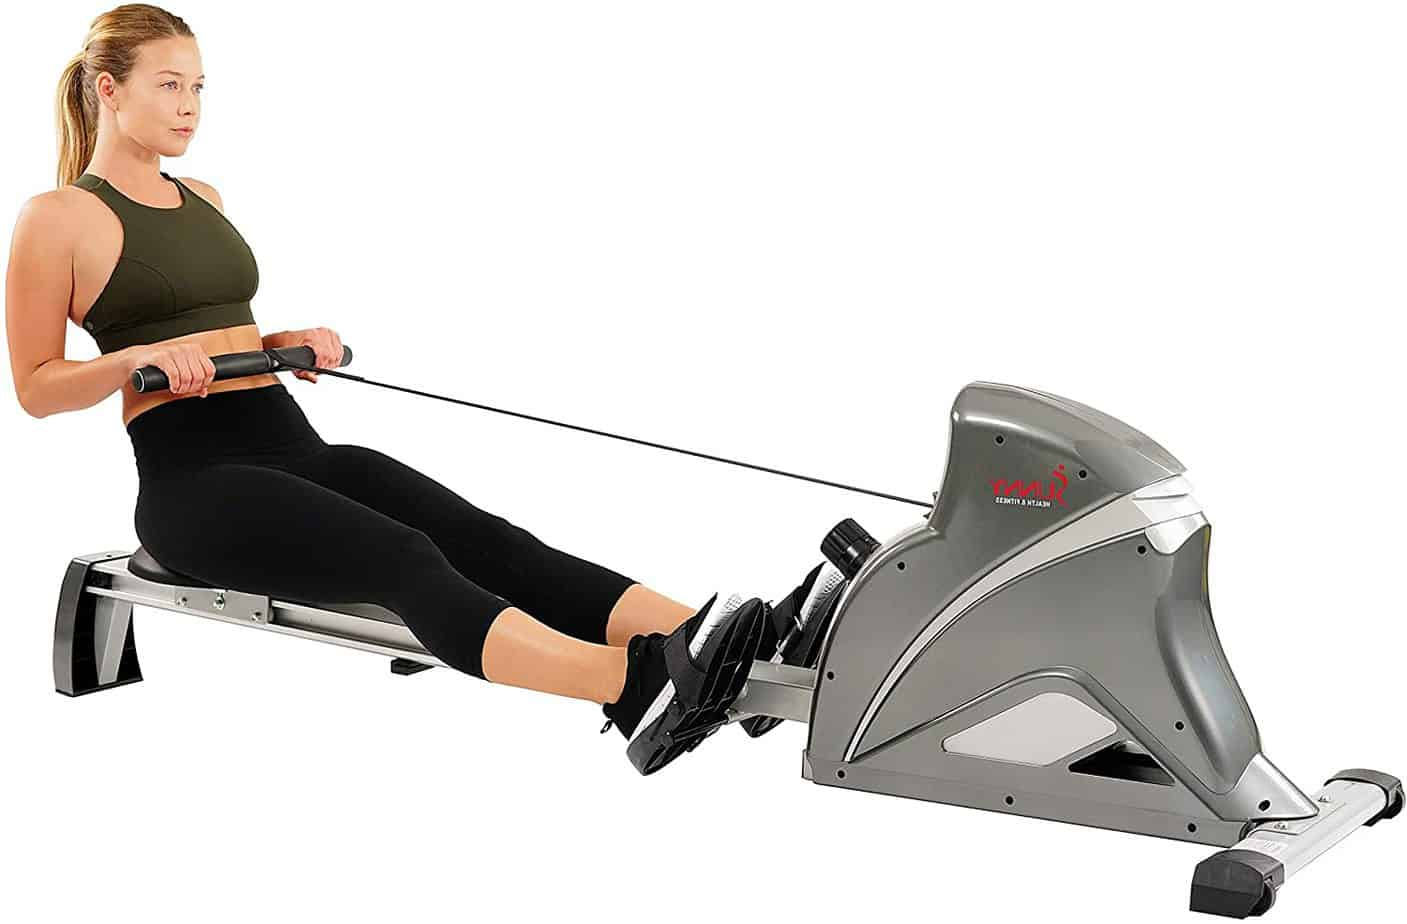 A lady exercising with the Sunny Health & Fitness SF-RW5508 Magnetic Rower